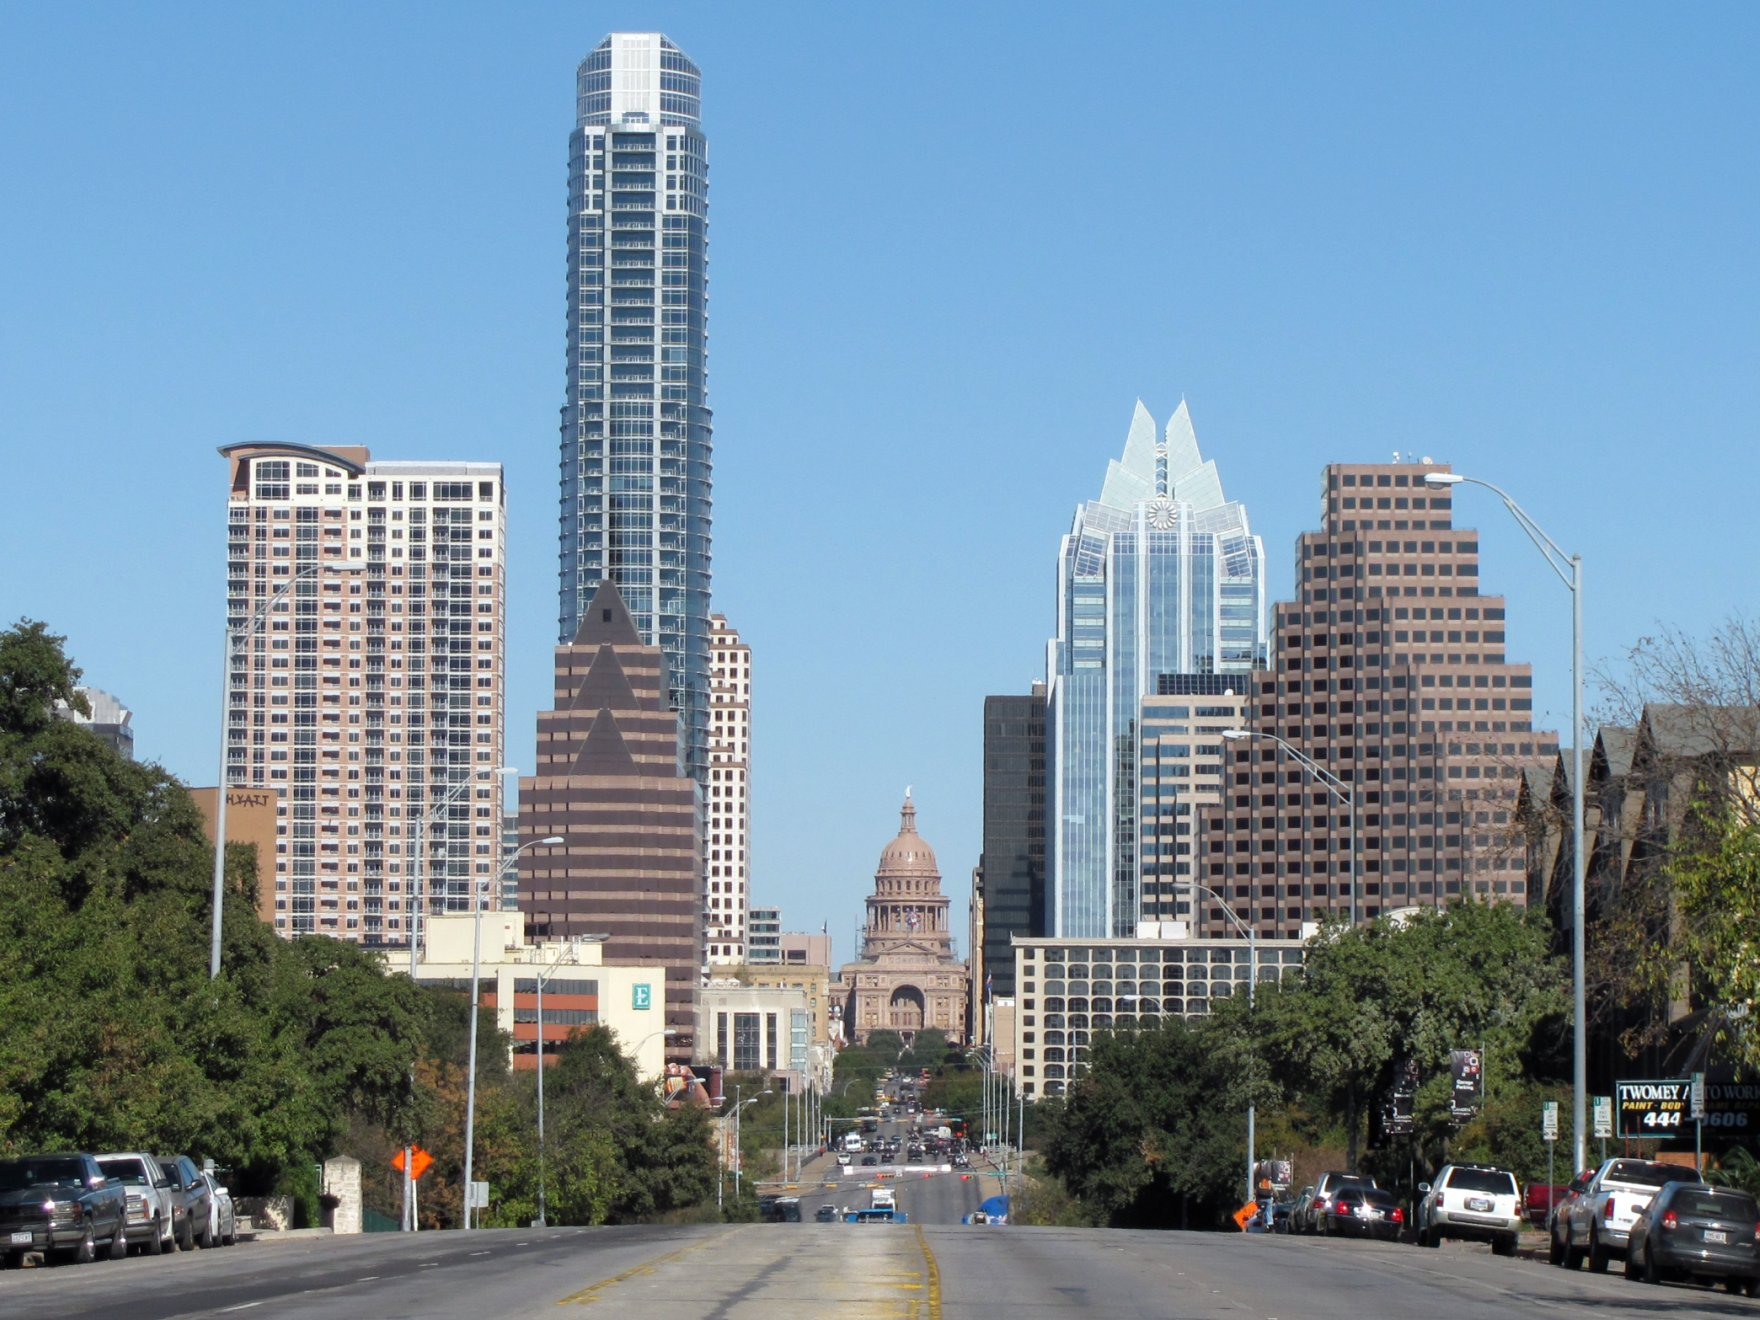 Taylor Benefits Insurance Agency offers group health, dental, vision, life & disability insurance & employee benefit packages in Austin.